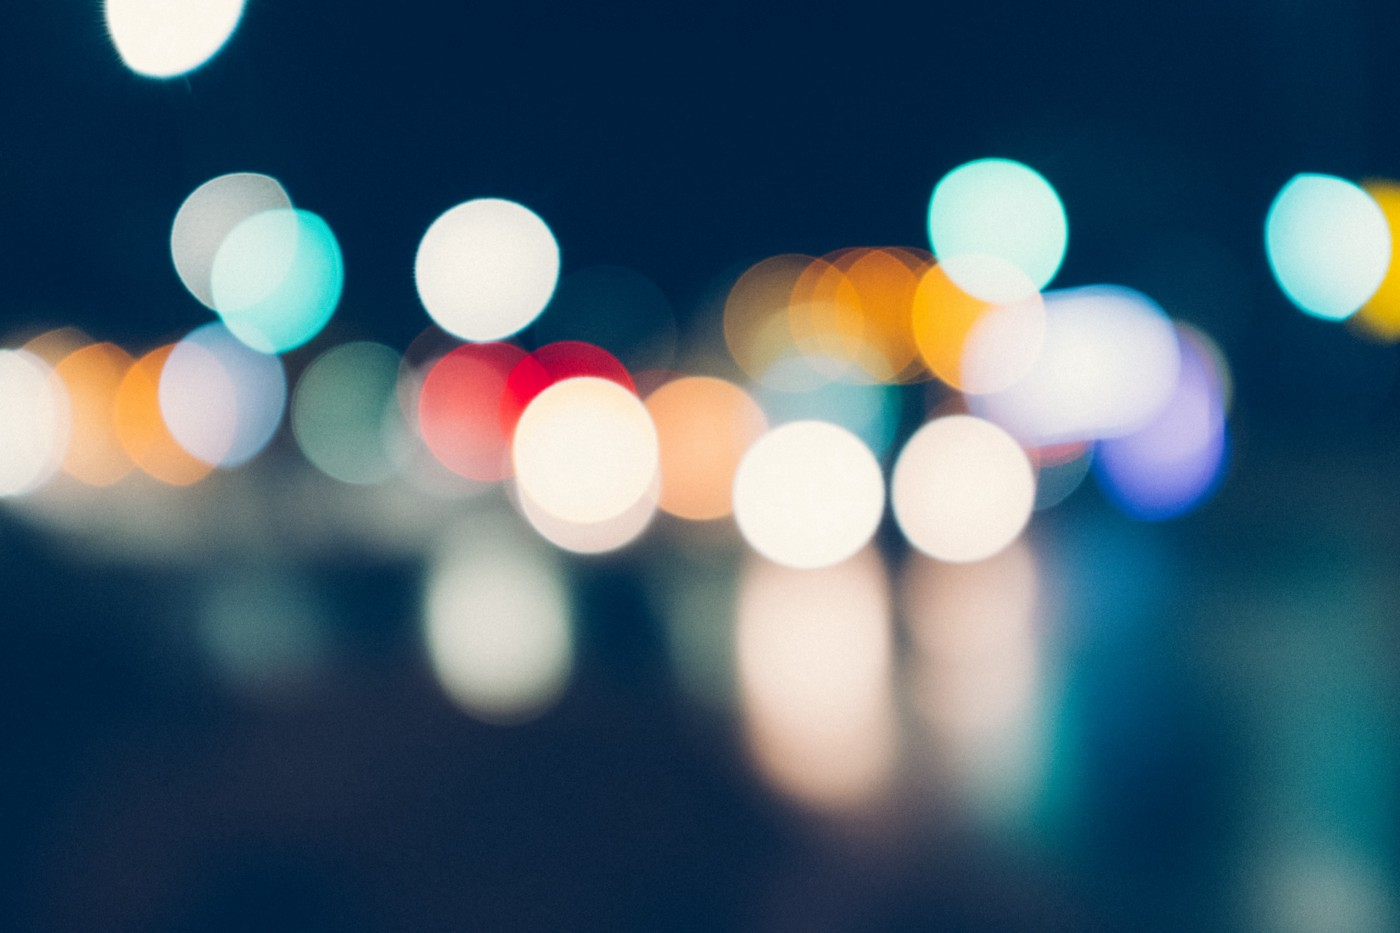 blurry colored lights illustrating the bokeh effect